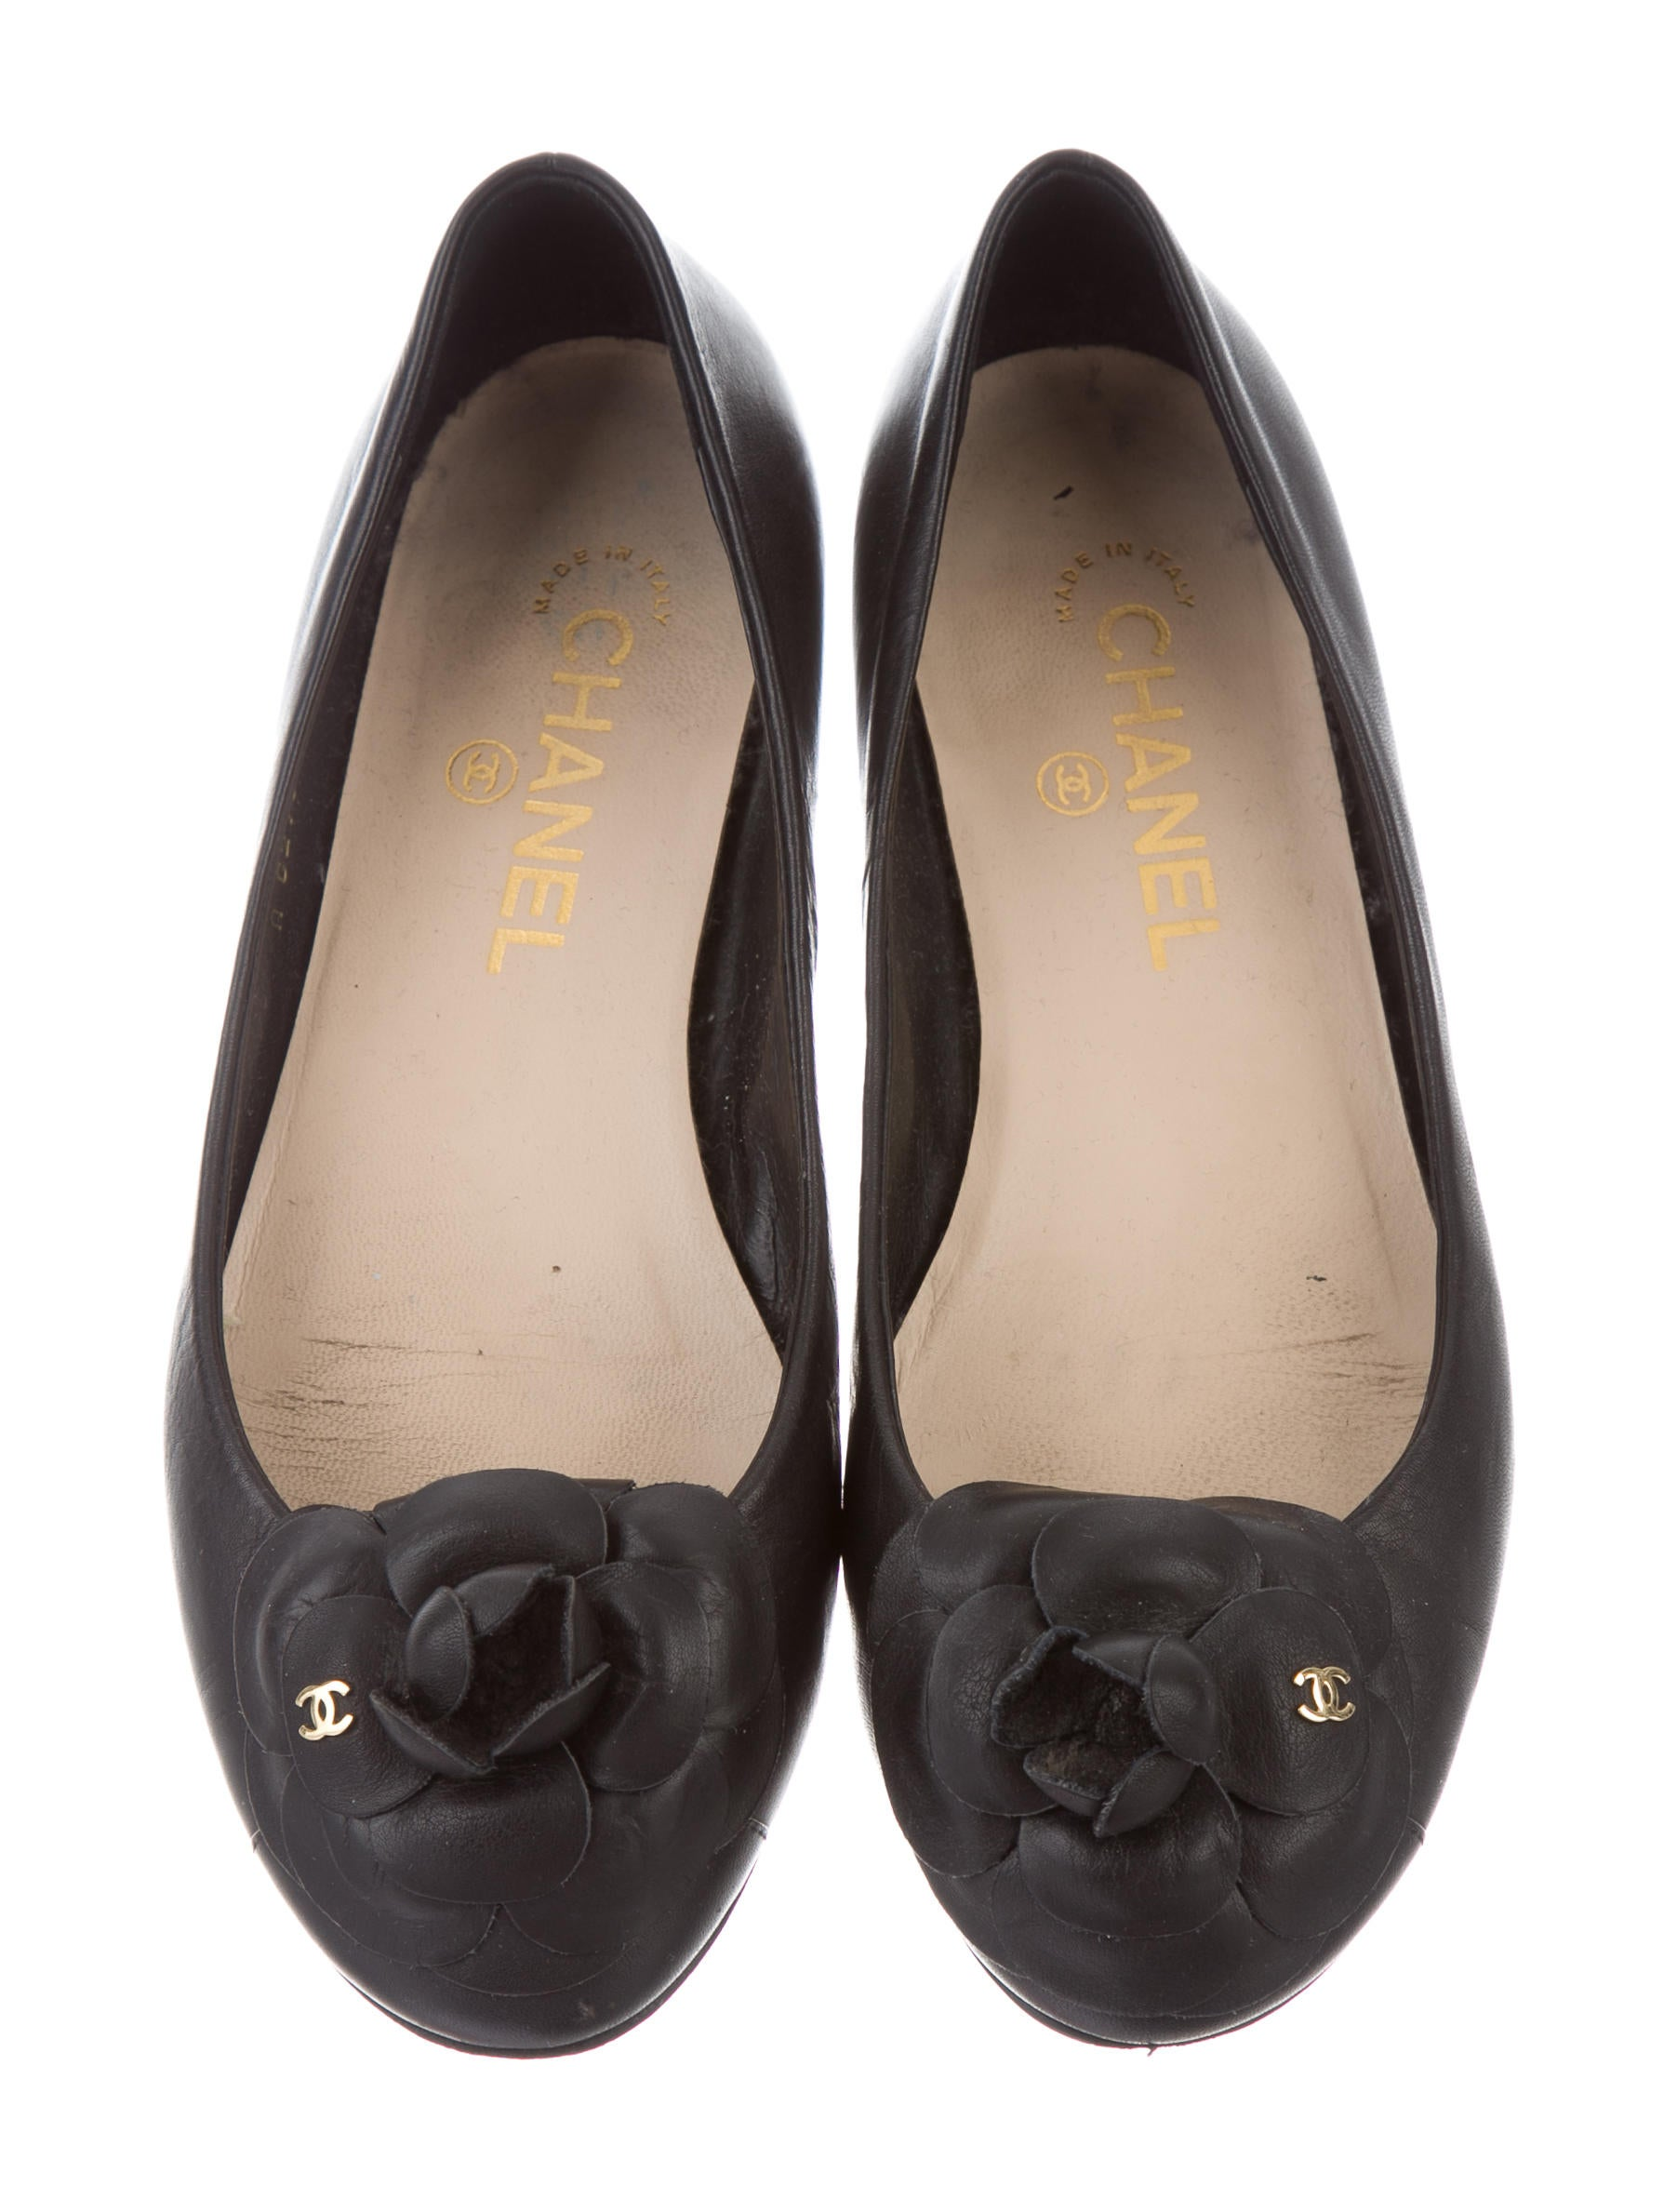 Chanel Leather Camellia Flats Shoes Cha163995 The